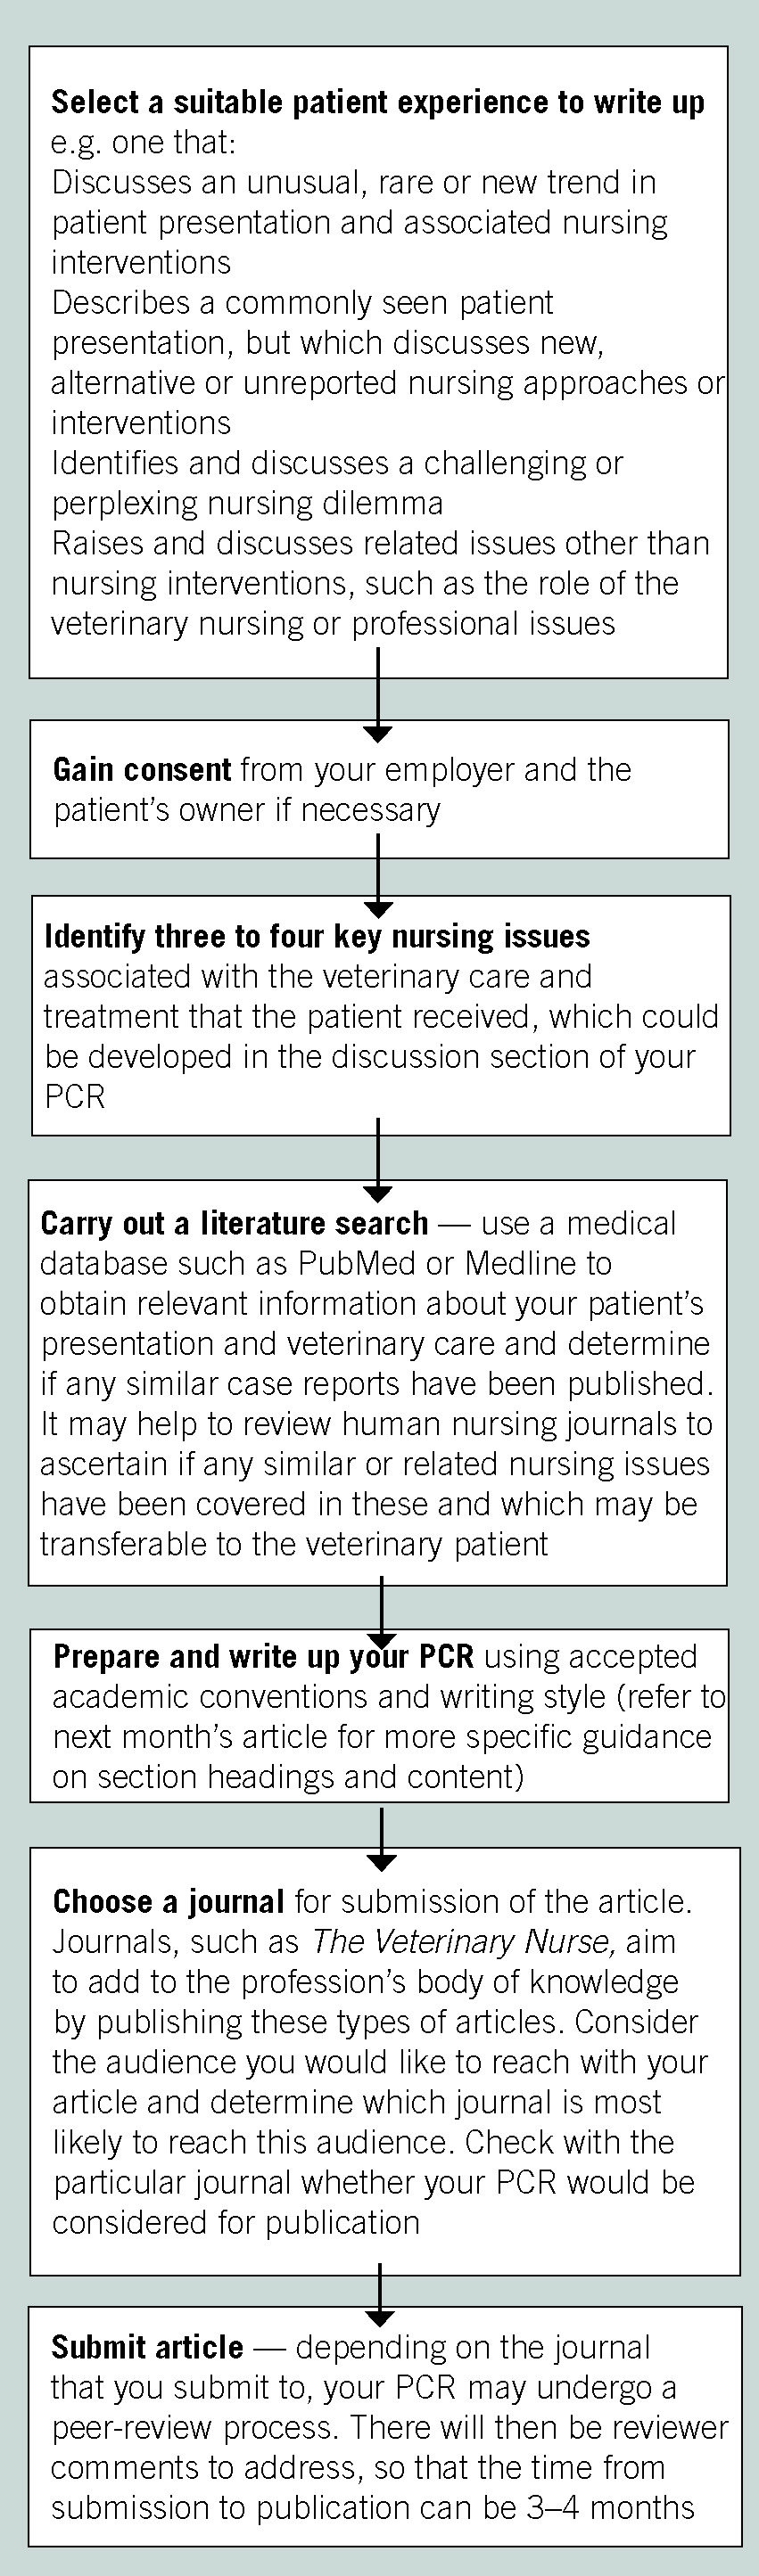 Writing Patient Care Reports Author Guidelines For Vns The Veterinary Nurse